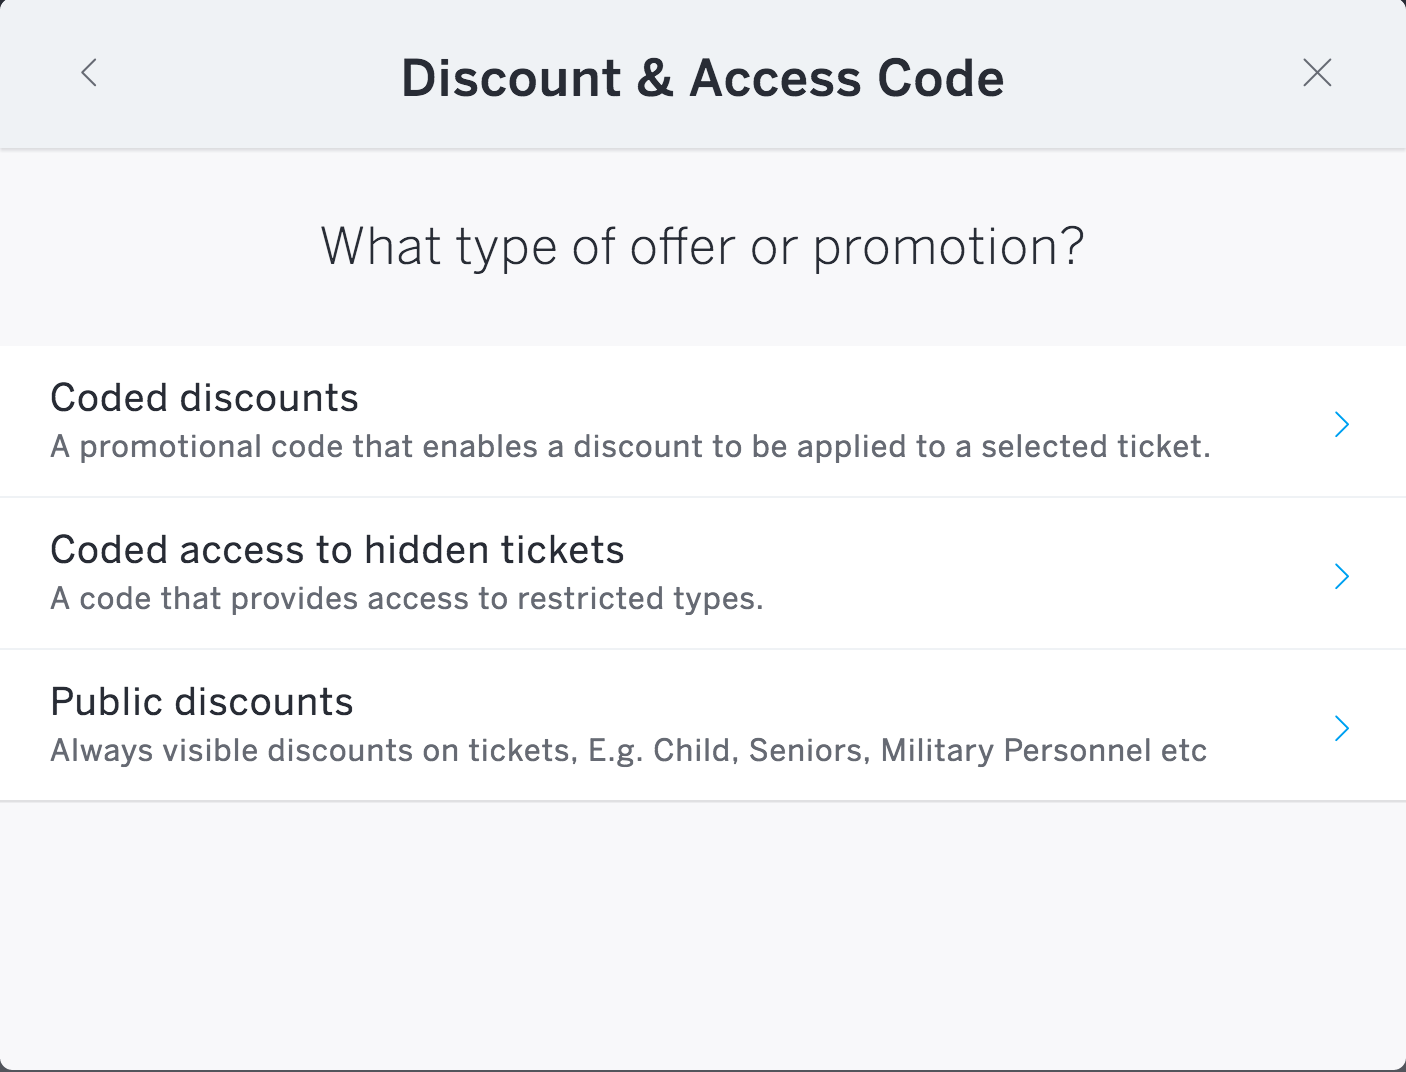 Creating a coupon code i will now explain the setup step by step - Select Public Discounts